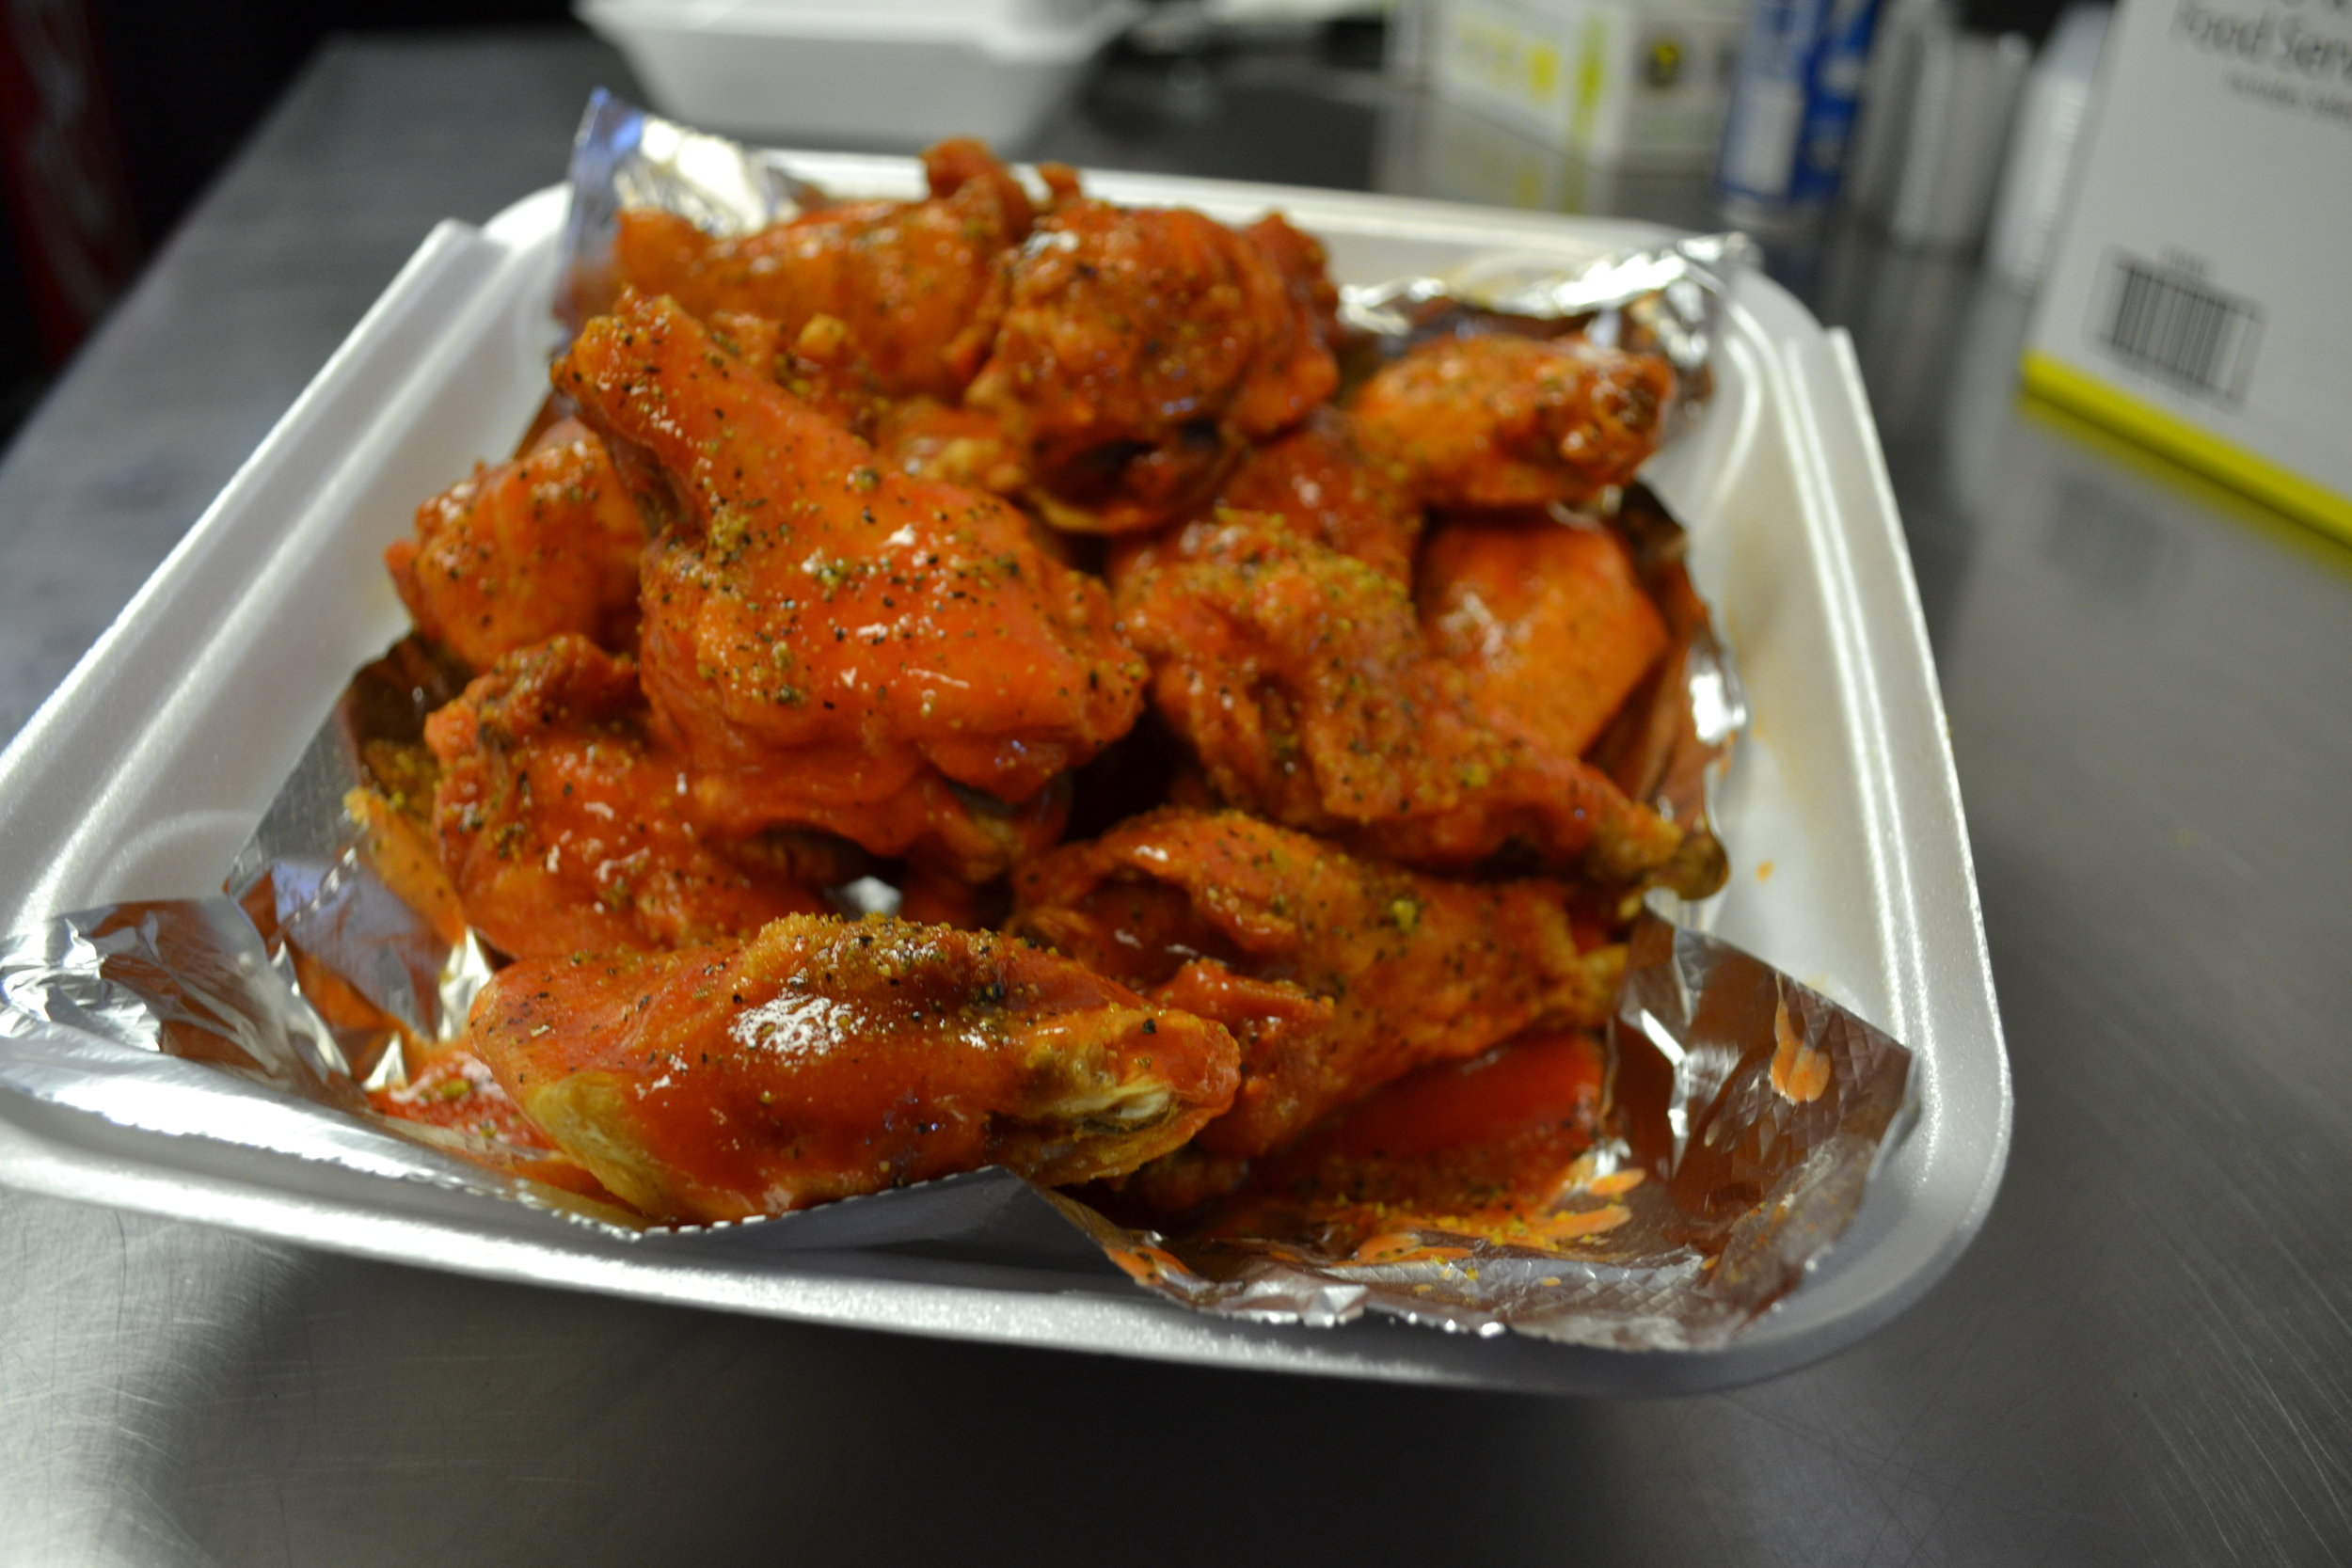 Big Shot Bob's House of Wings - 1534 5th Ave, (412) 269-7468